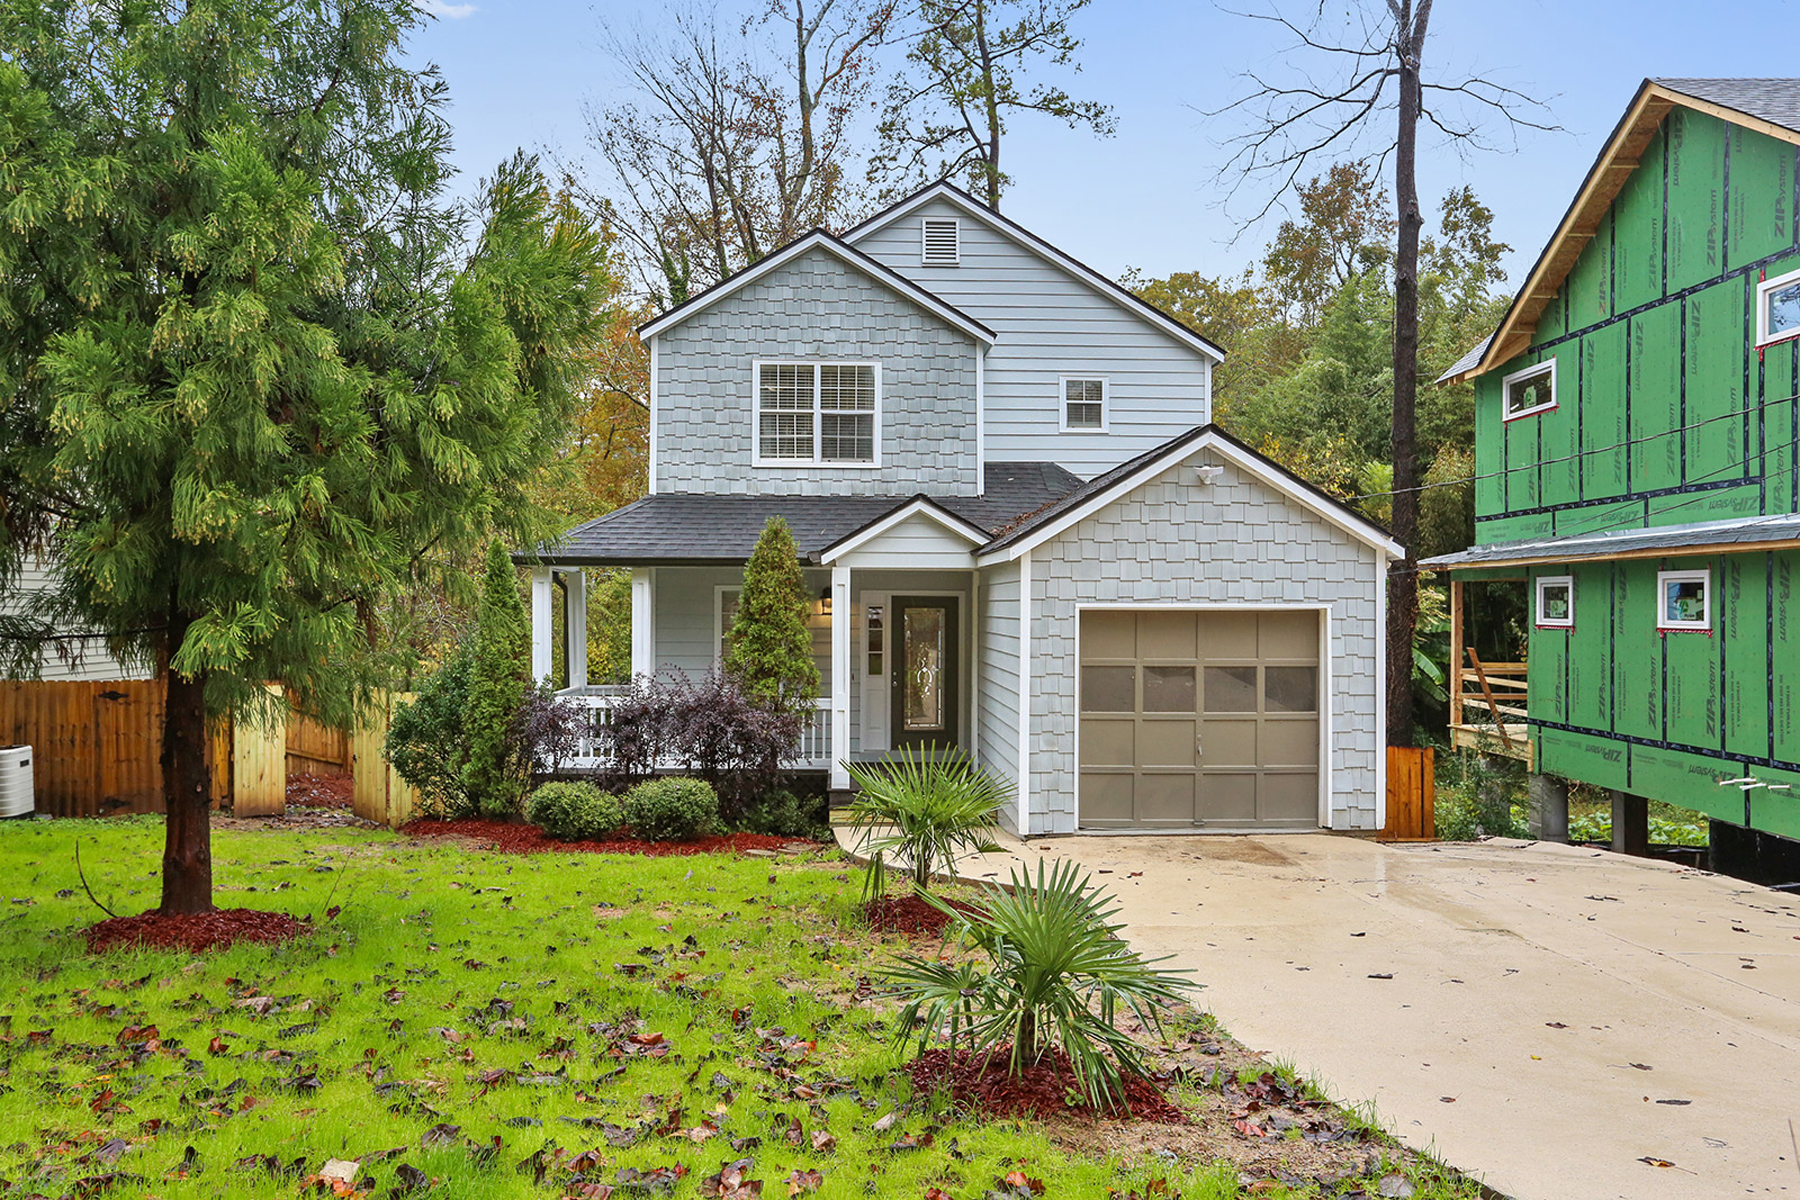 Single Family Homes for Sale at Renovated Oakhurst Bungalow 527 Oakview Road Decatur, Georgia 30030 United States